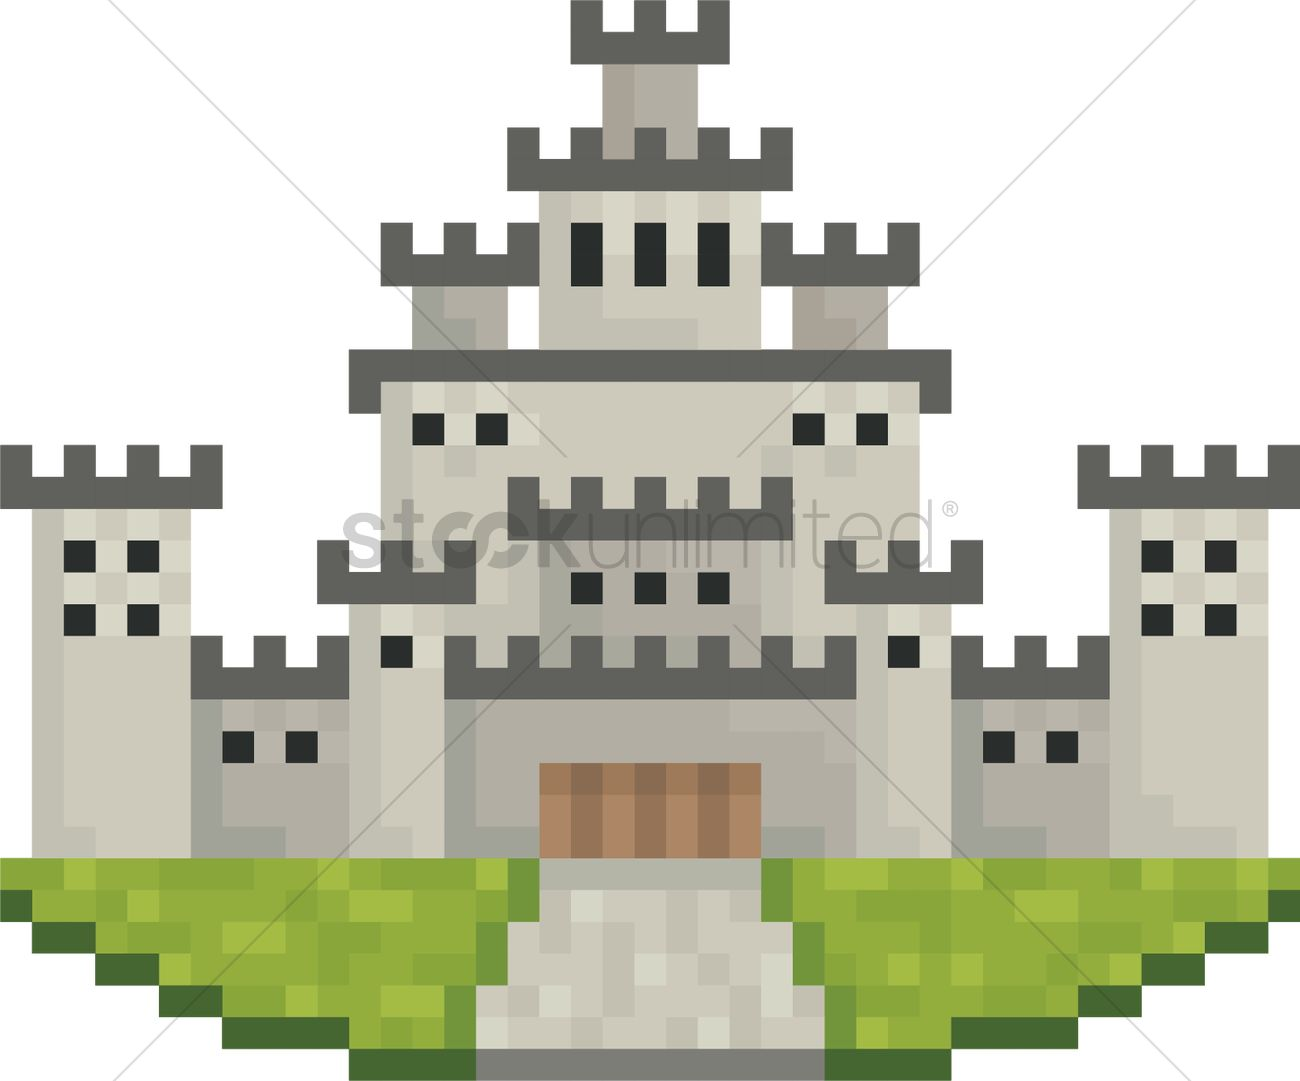 All House Building Games